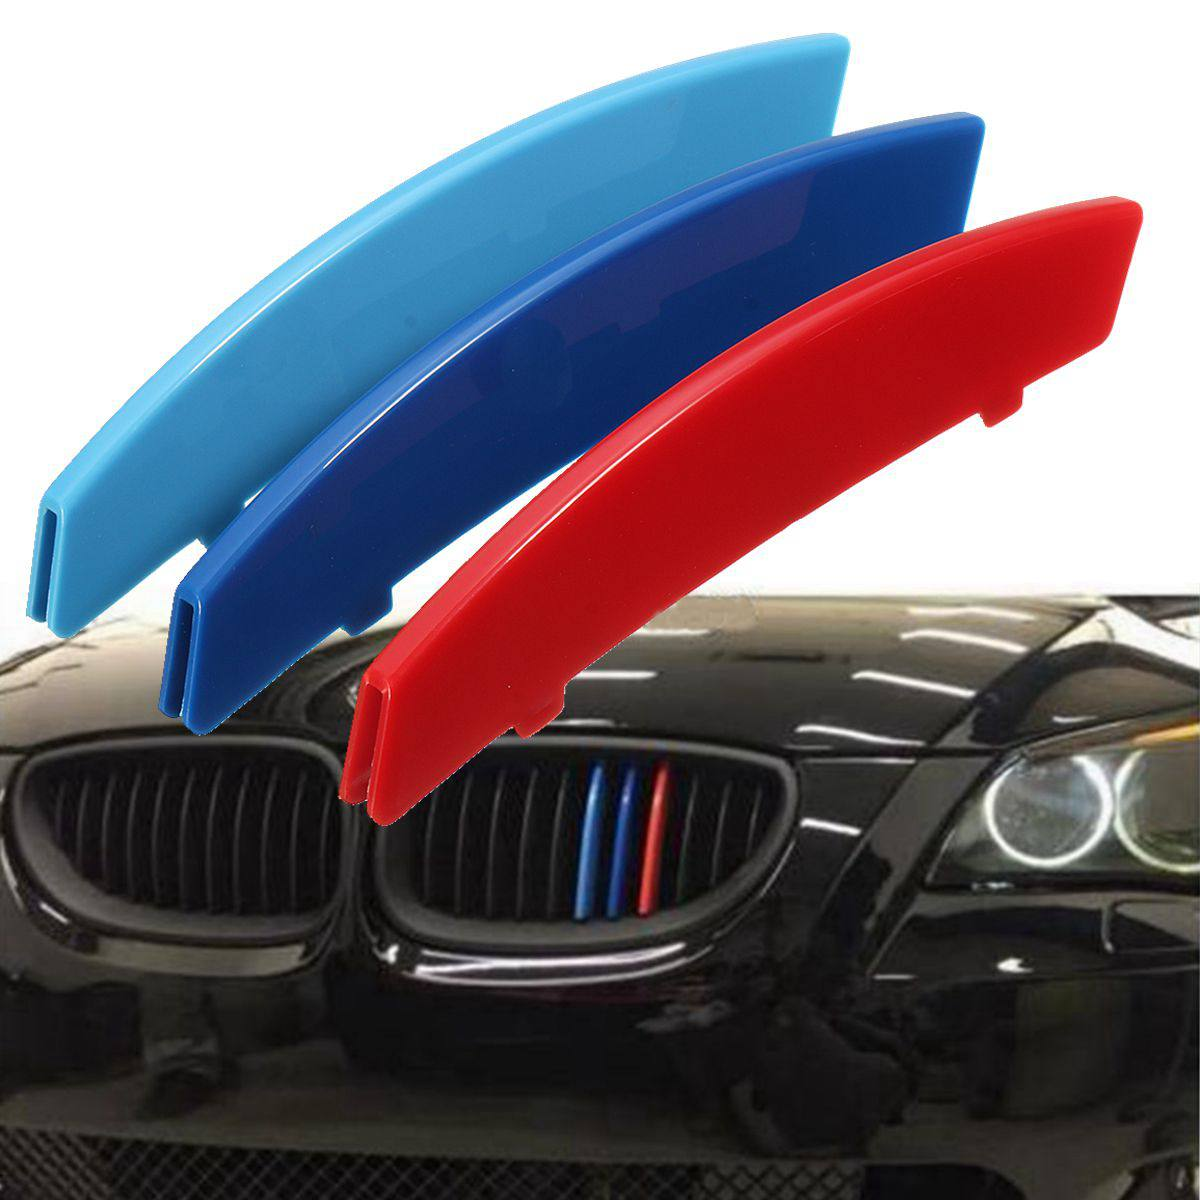 3pcs 3D Car Racing Grille Sport Stripe Clip ABS Decal Sticker For BMW 3 Series F30 F31 F35 E90 5 Series F10 F18 E60 X5 X6 E70